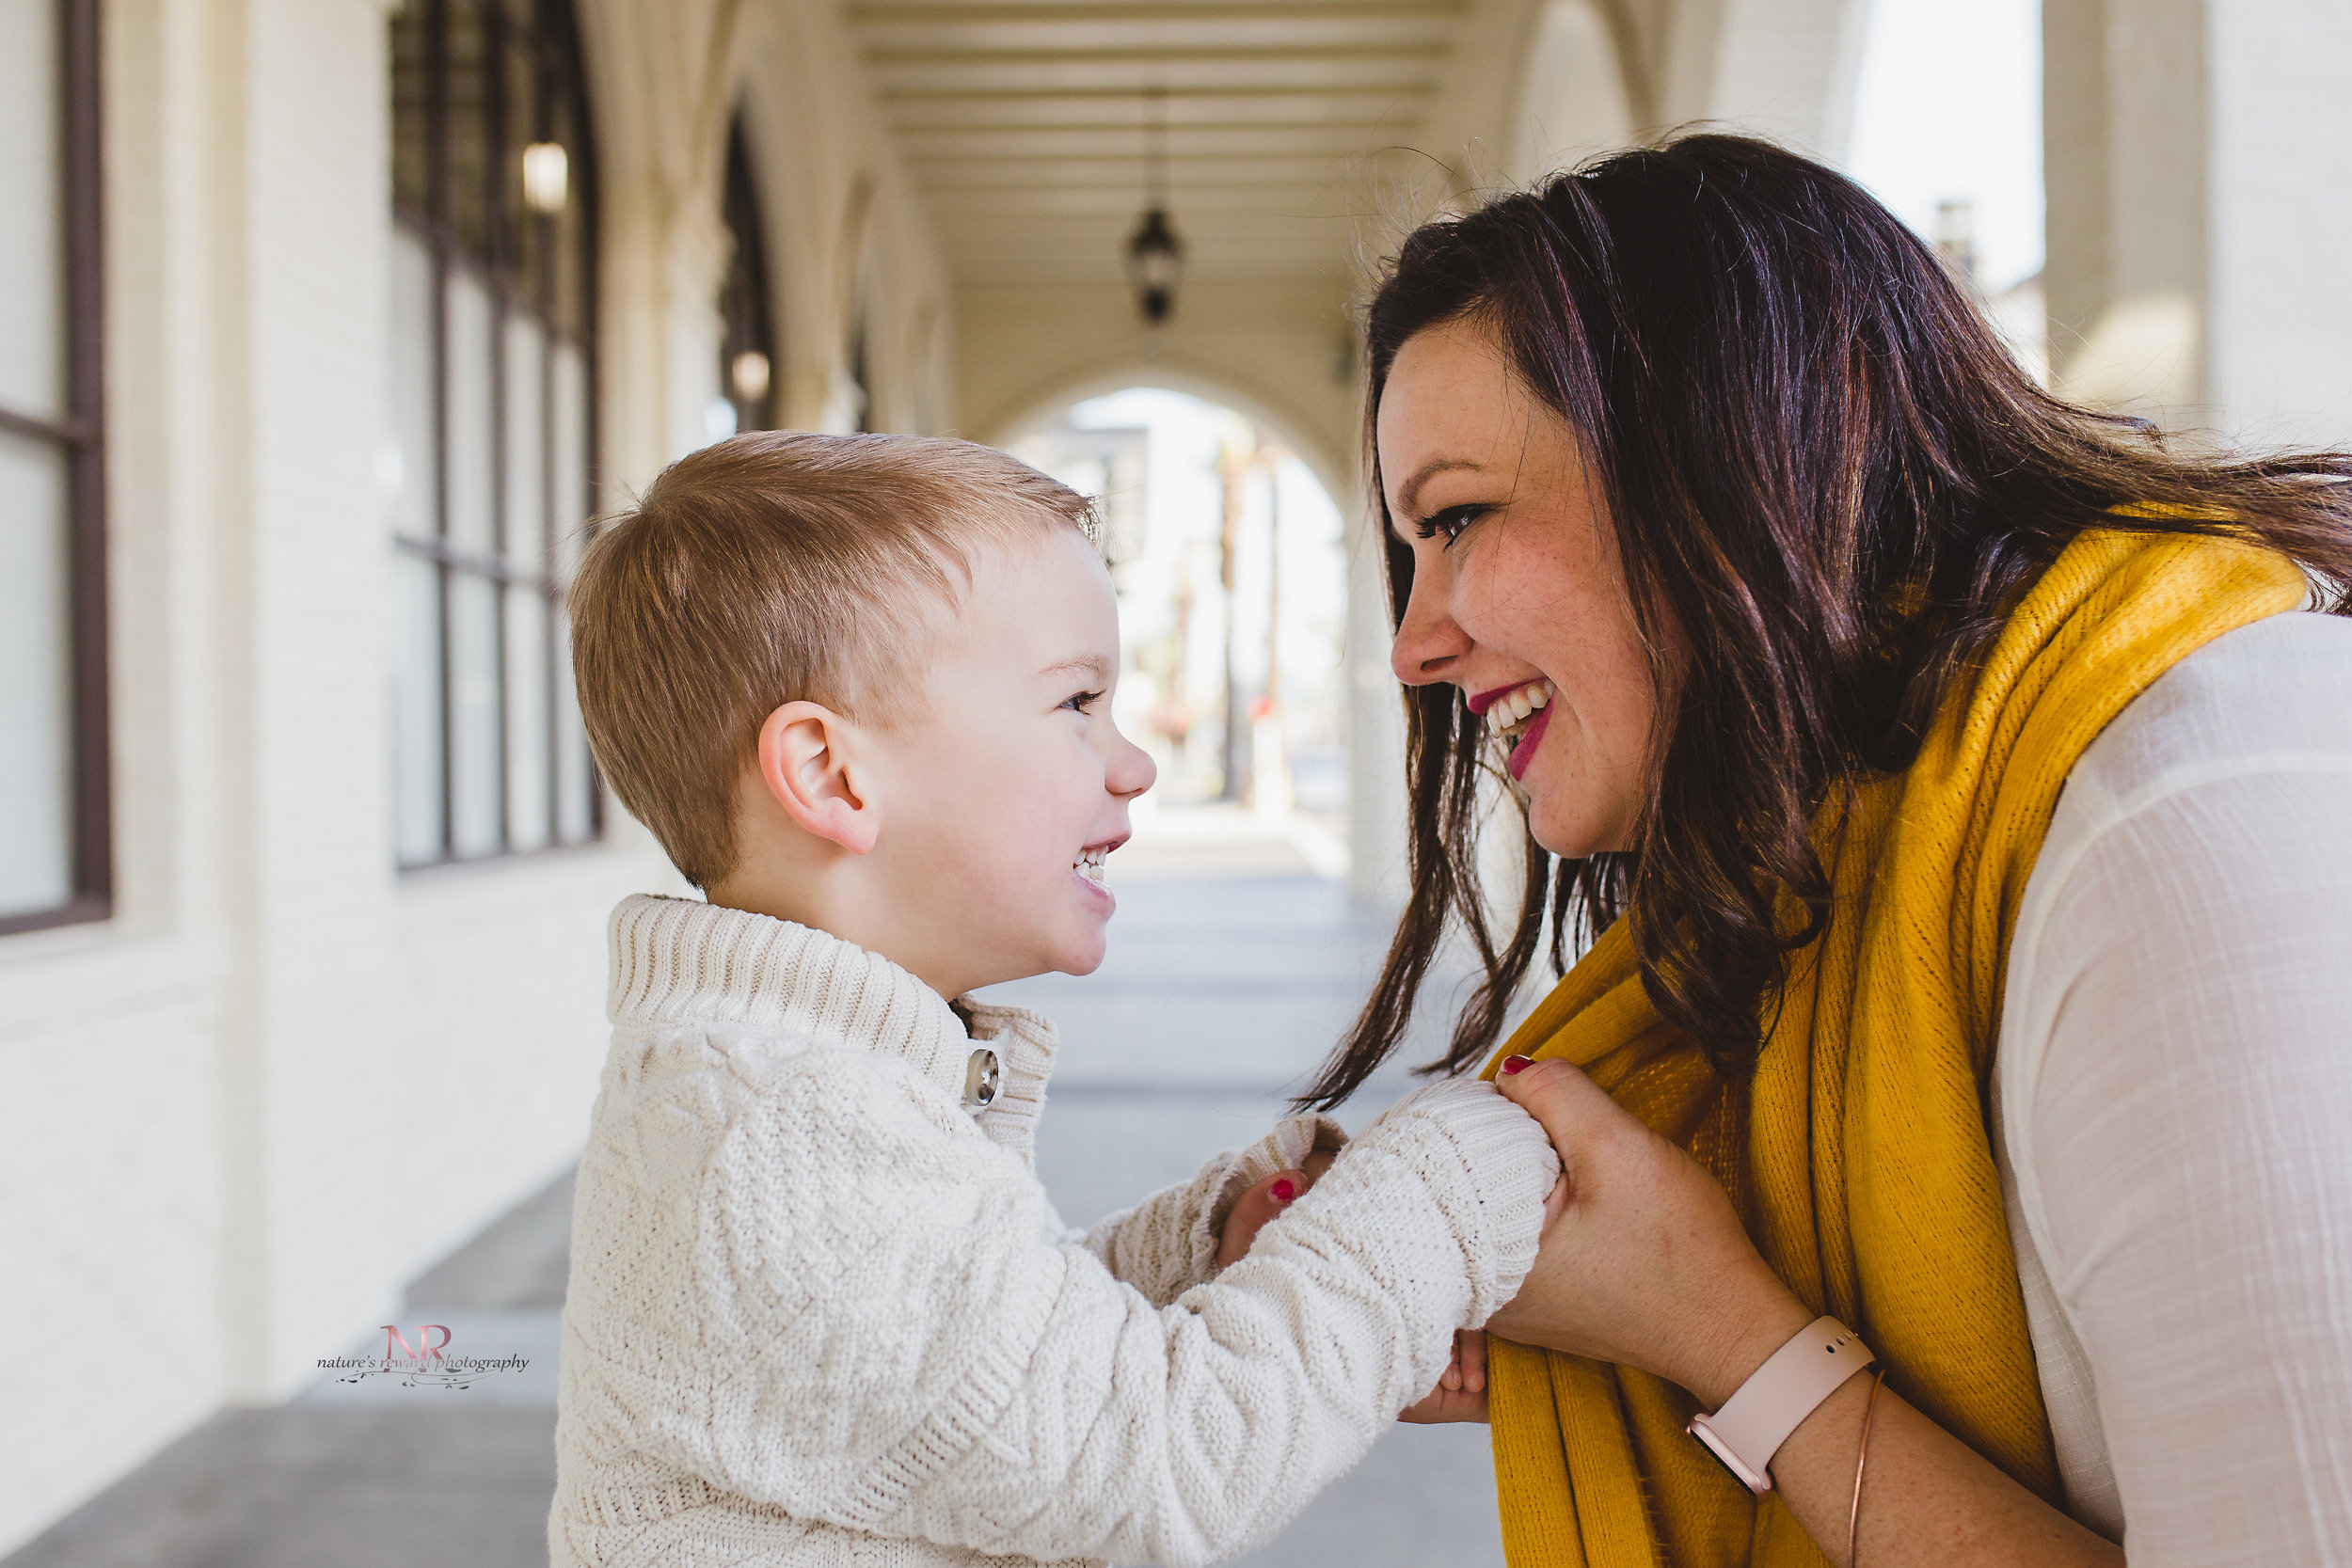 Mom and Son image